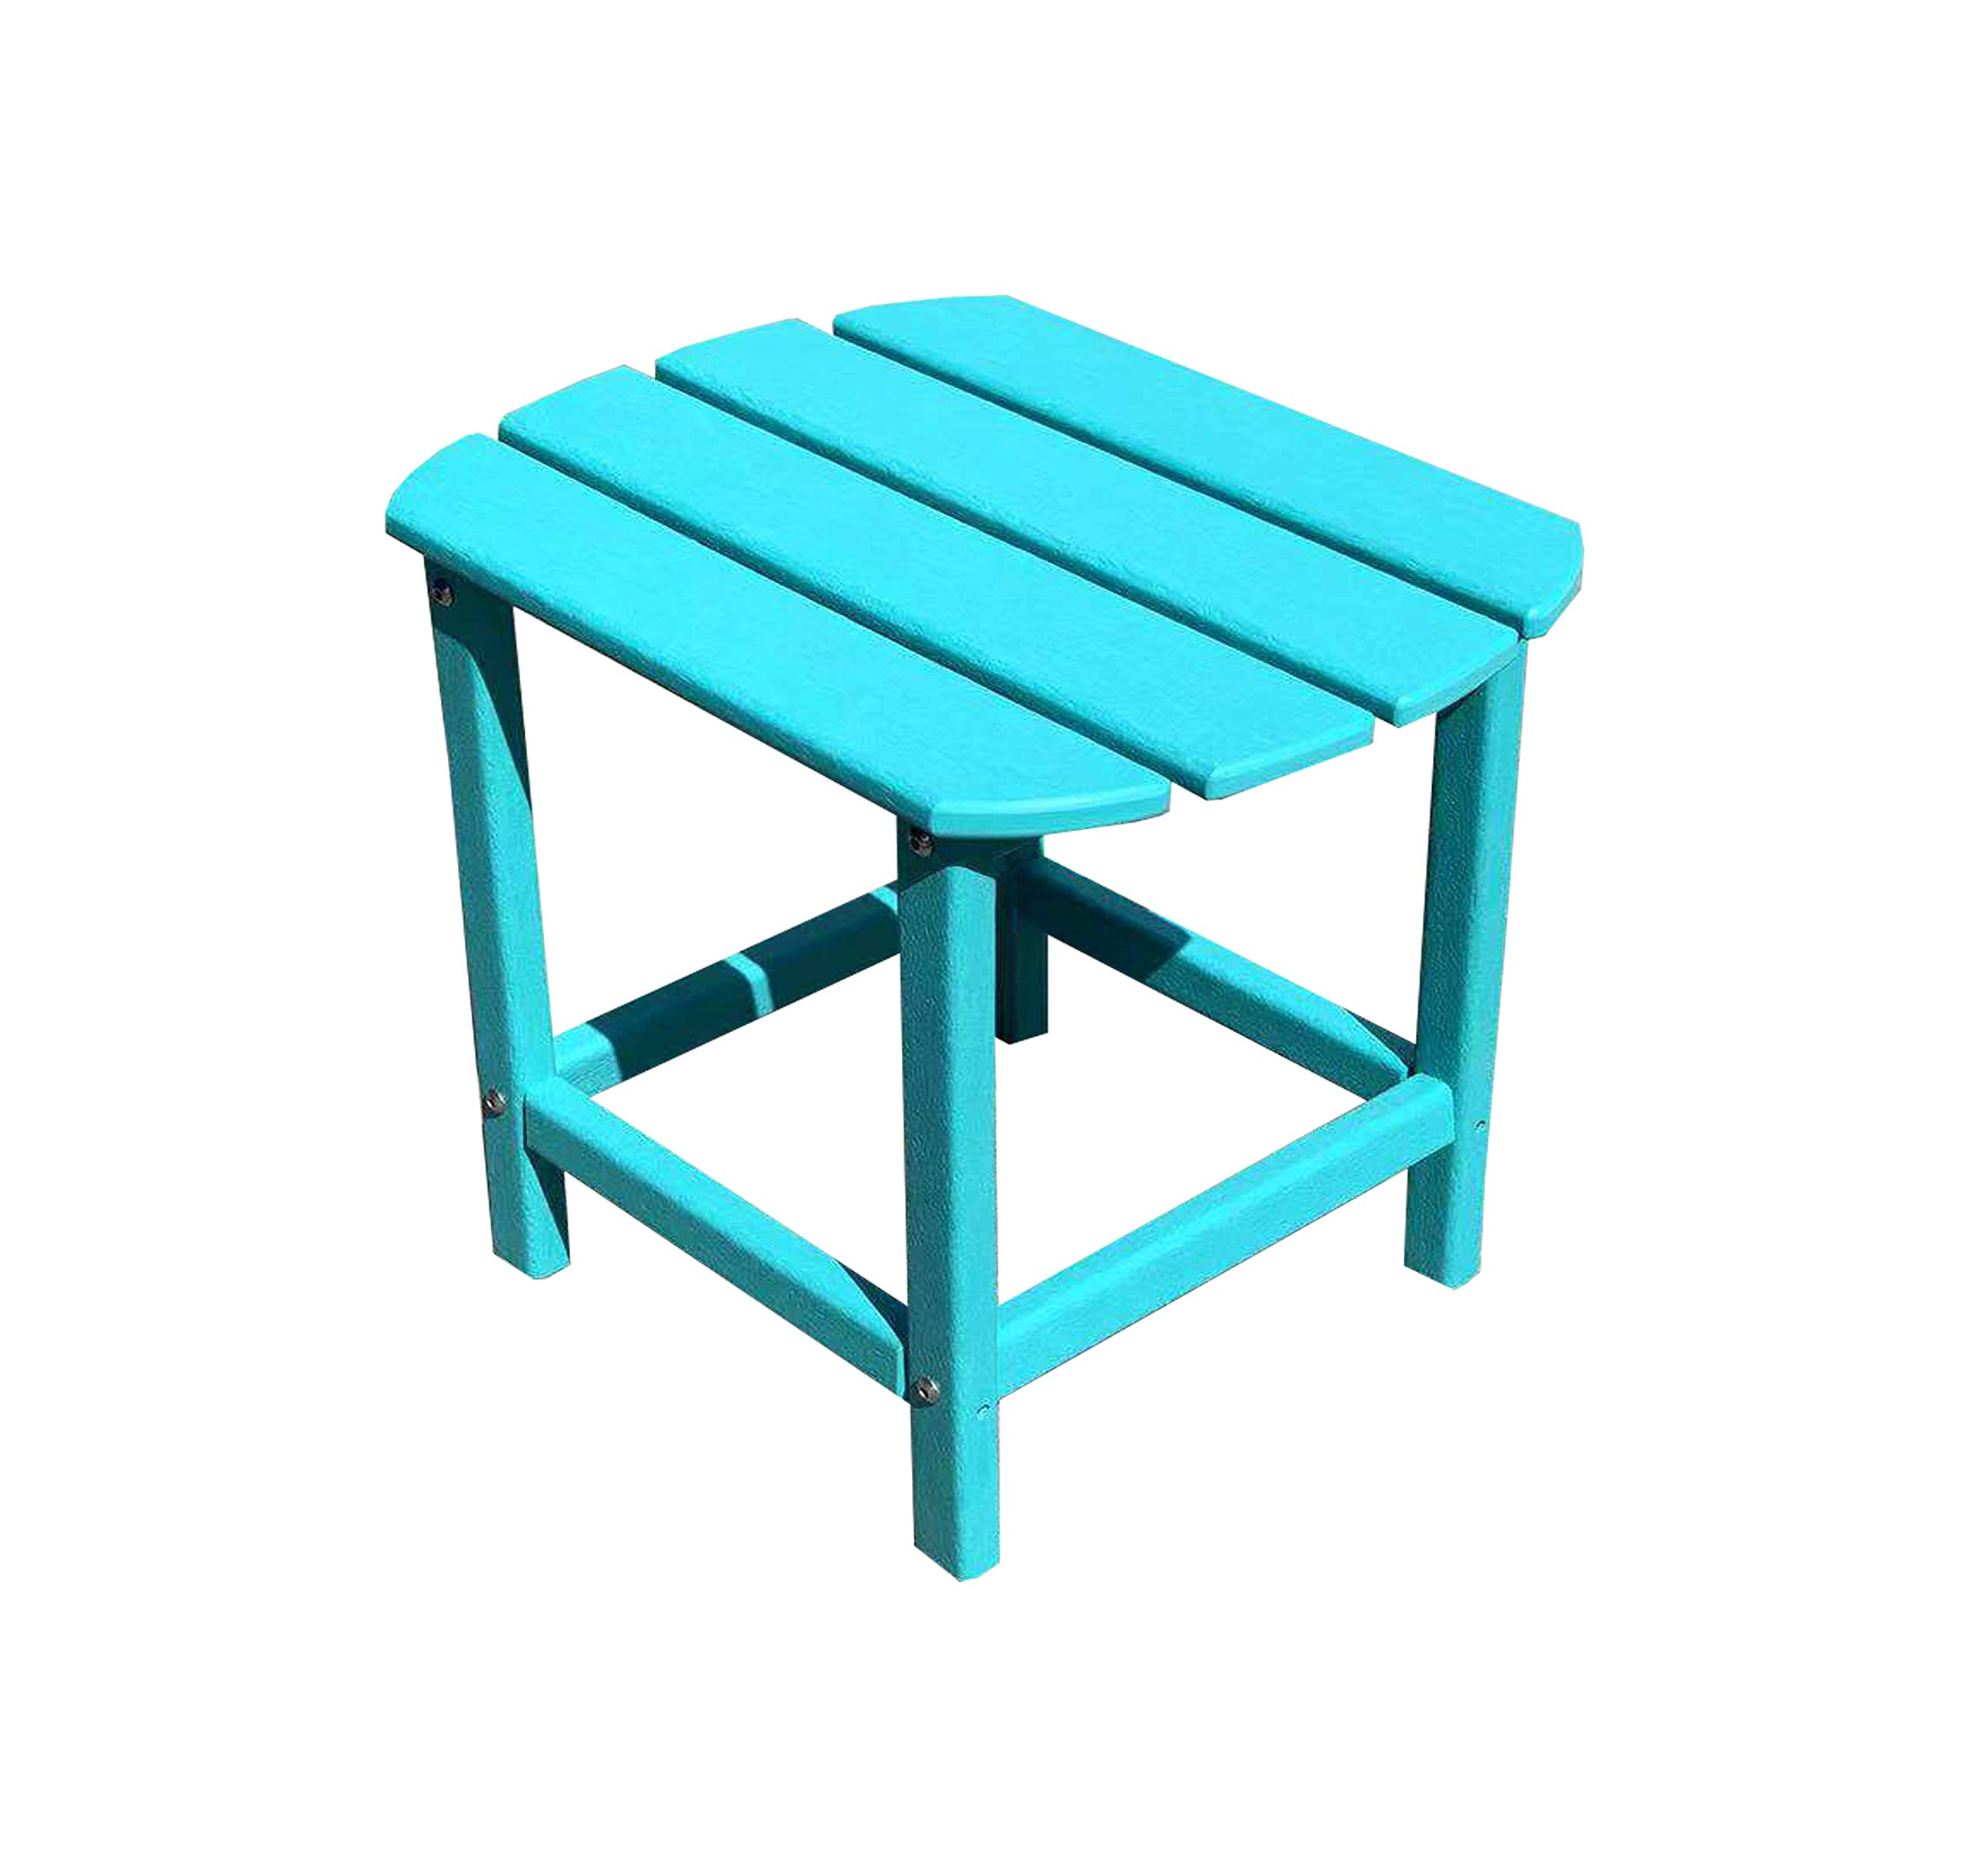 LuXeo LUX-1520-ABL-ST Corona Recycled Plastic Side Table, Aruba Blue by LuXeo